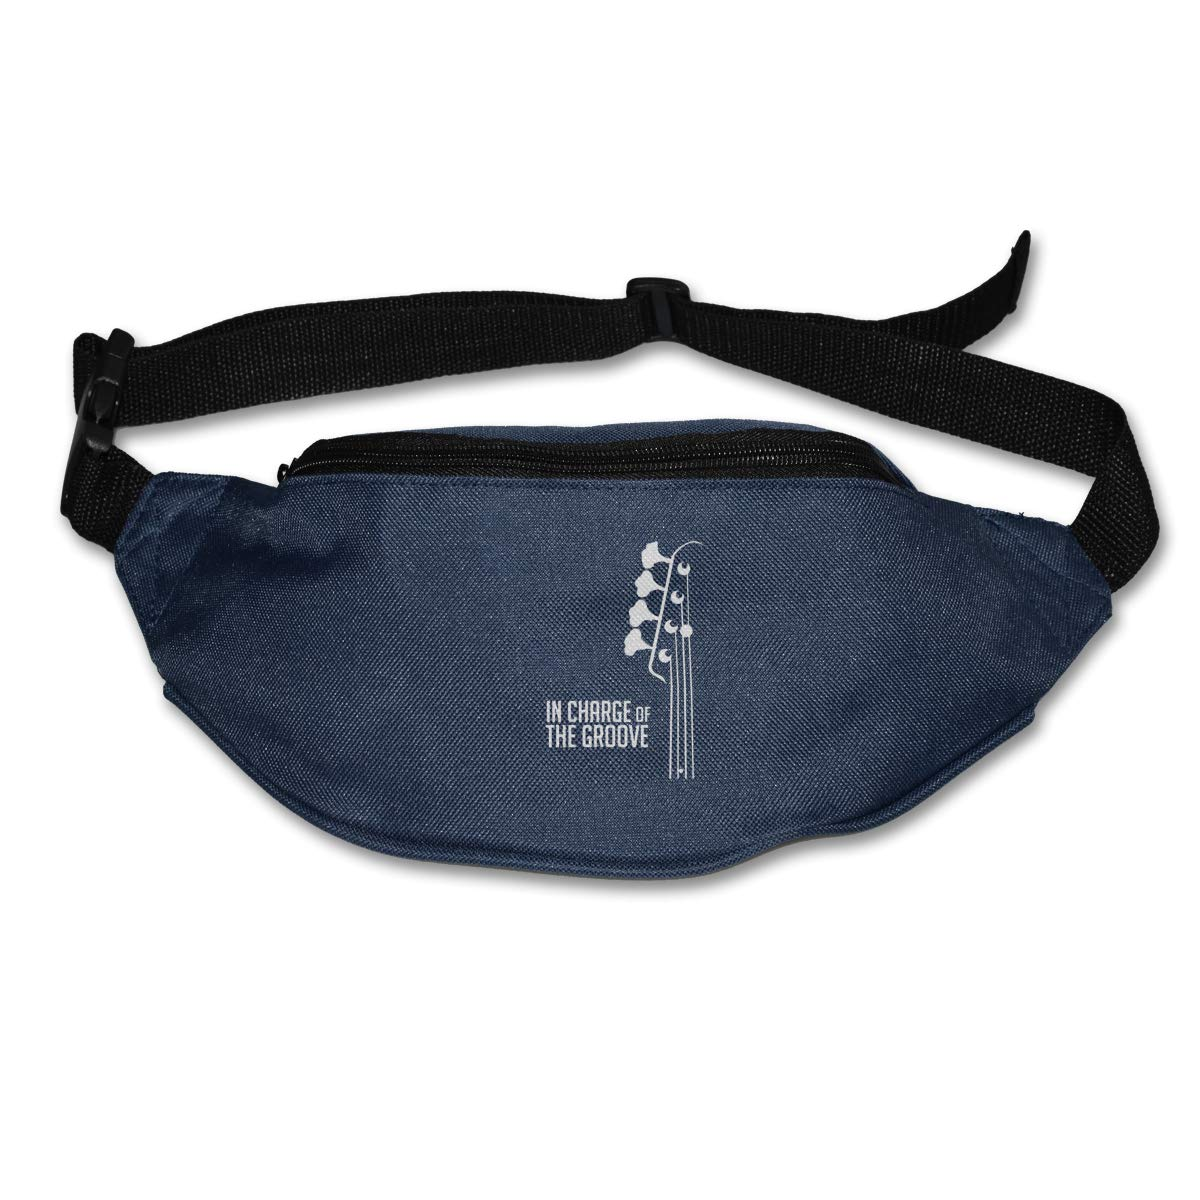 In Charge Of The Groove Sport Waist Pack Fanny Pack Adjustable For Run